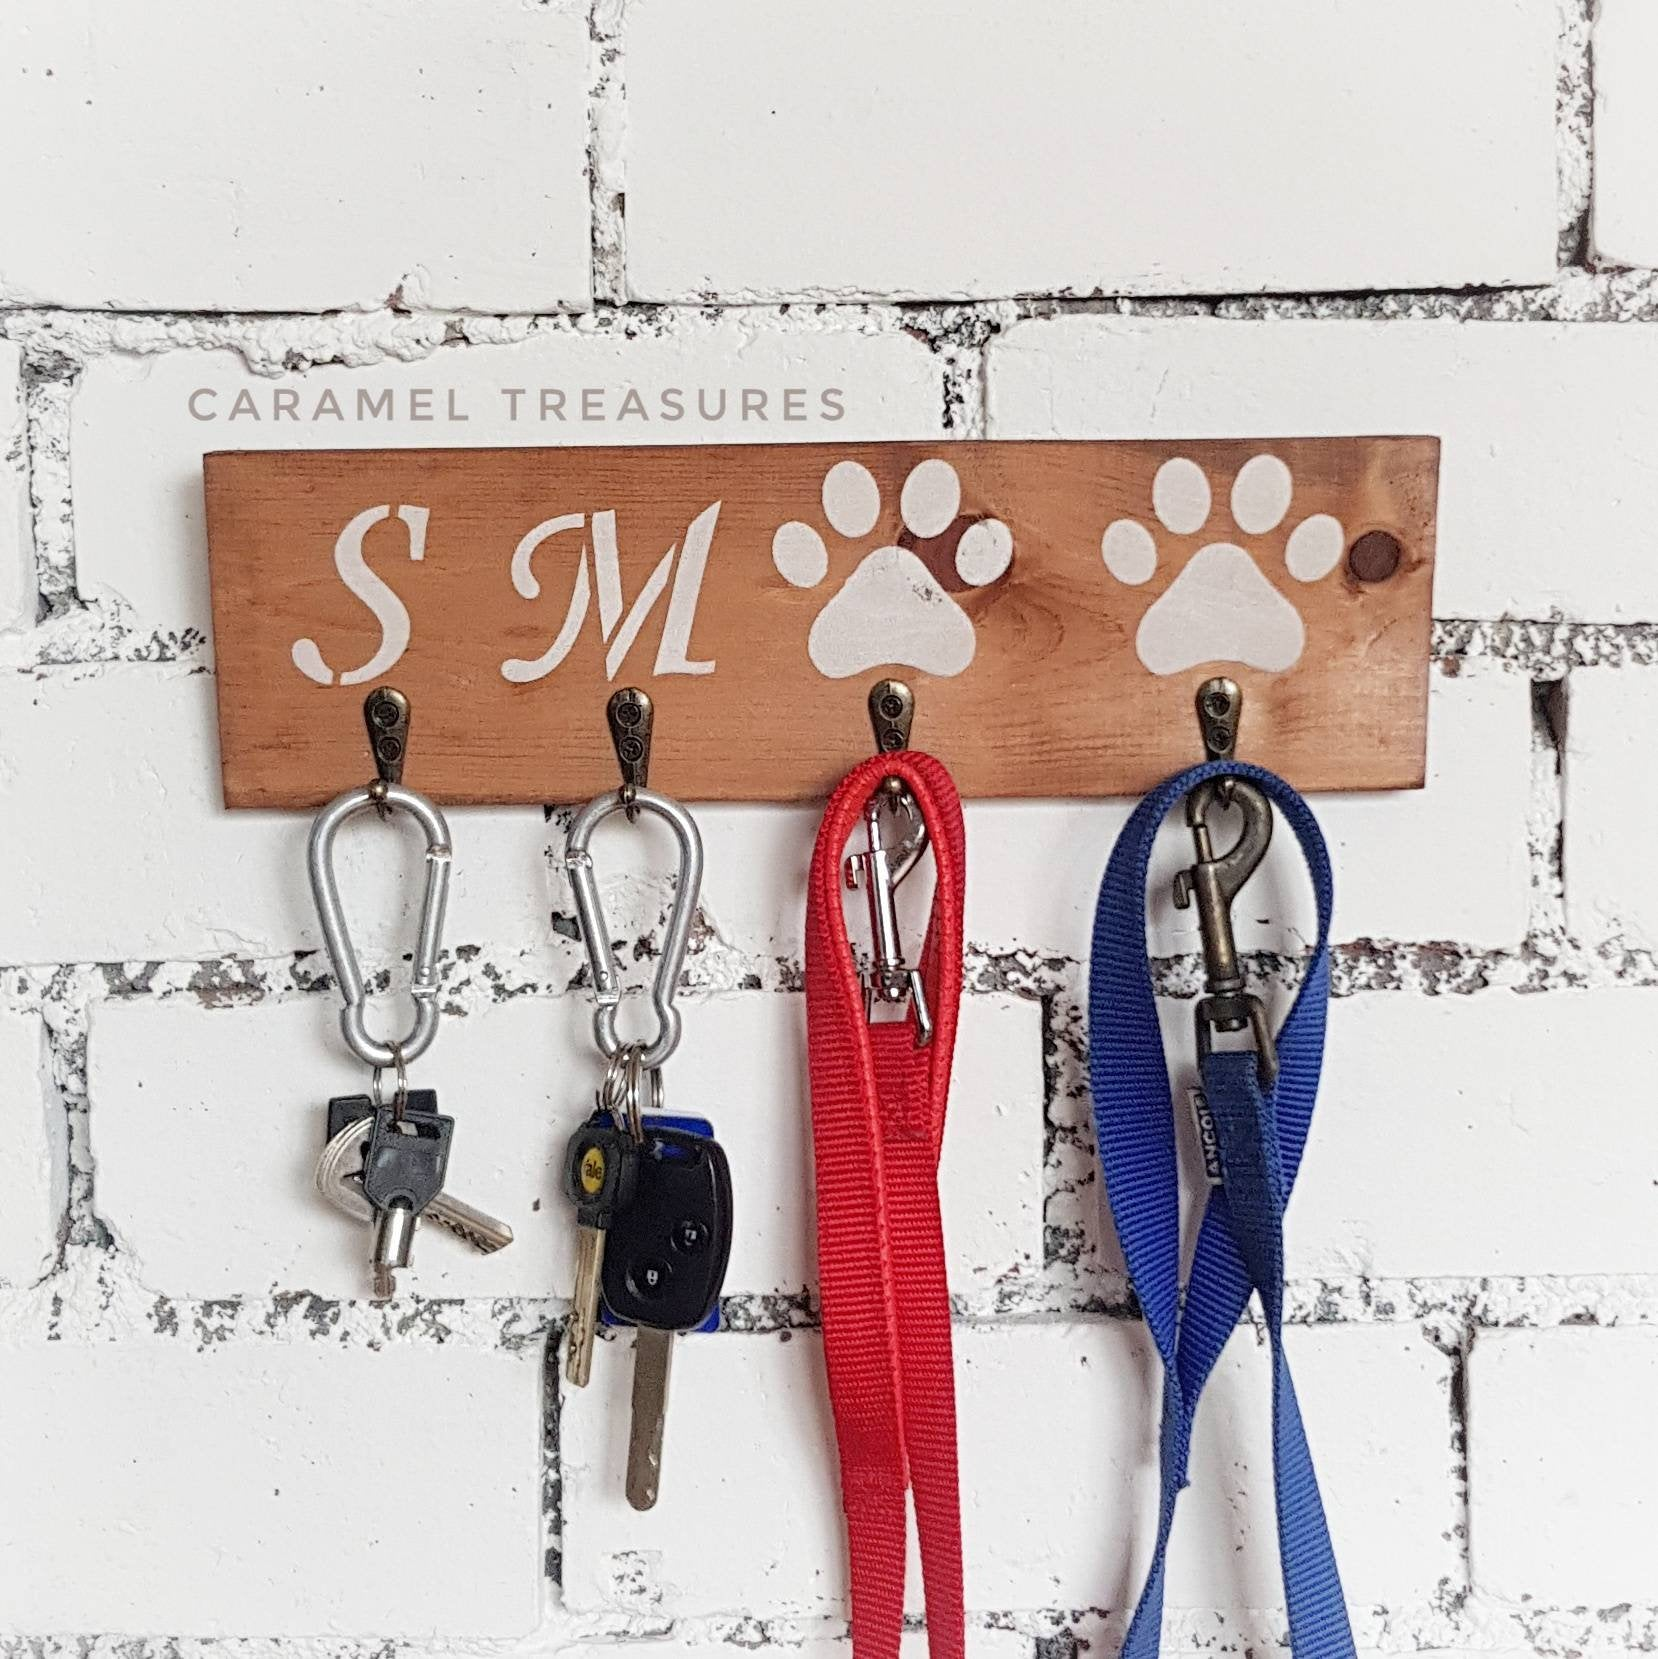 Wooden personalised key and lead holder - Caramel Treasures